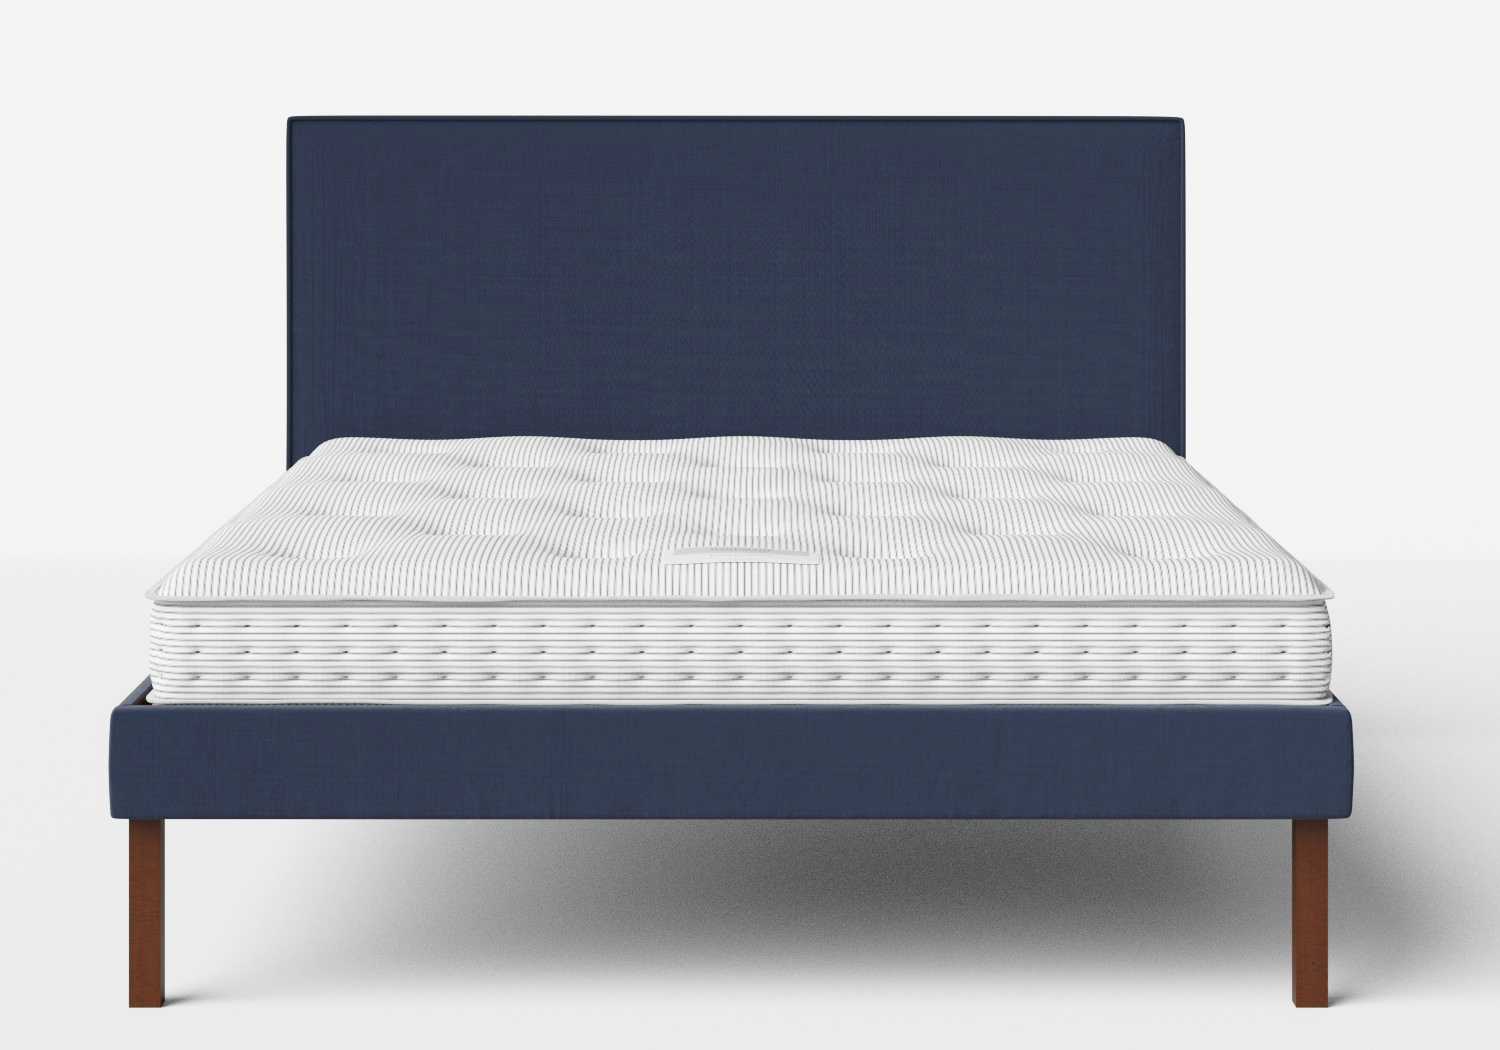 Misaki Upholstered Bed in Navy fabric with piping shown with Juno 1 mattress